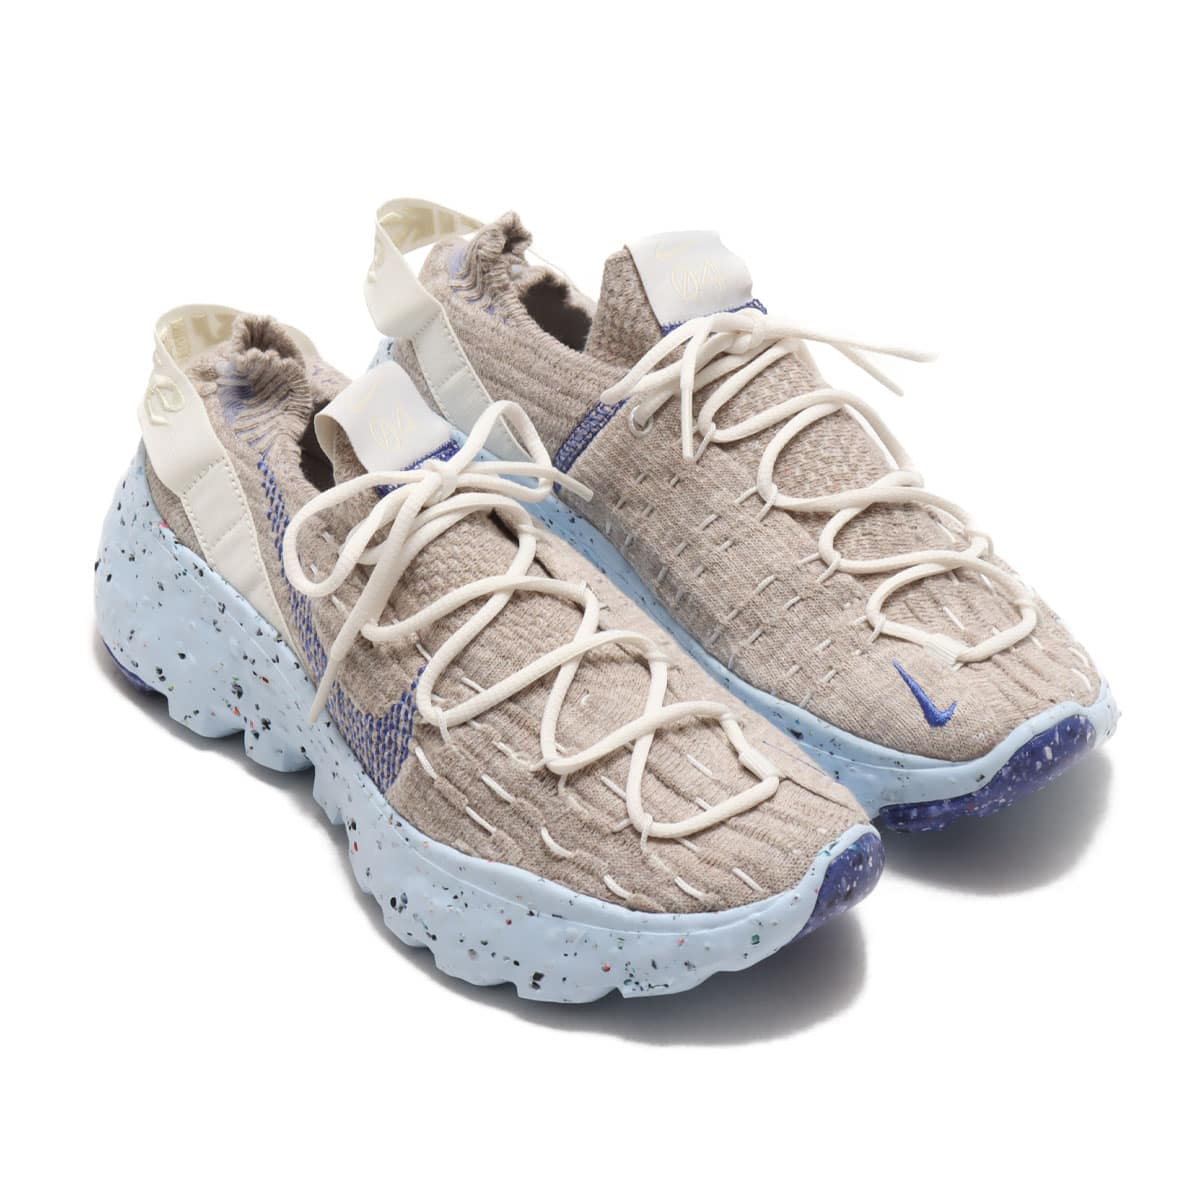 NIKE W SPACE HIPPIE 04 SAIL/ASTRONOMY BLUE-FOSSIL-CHAMBRAY BLUE 20FA-I_photo_large